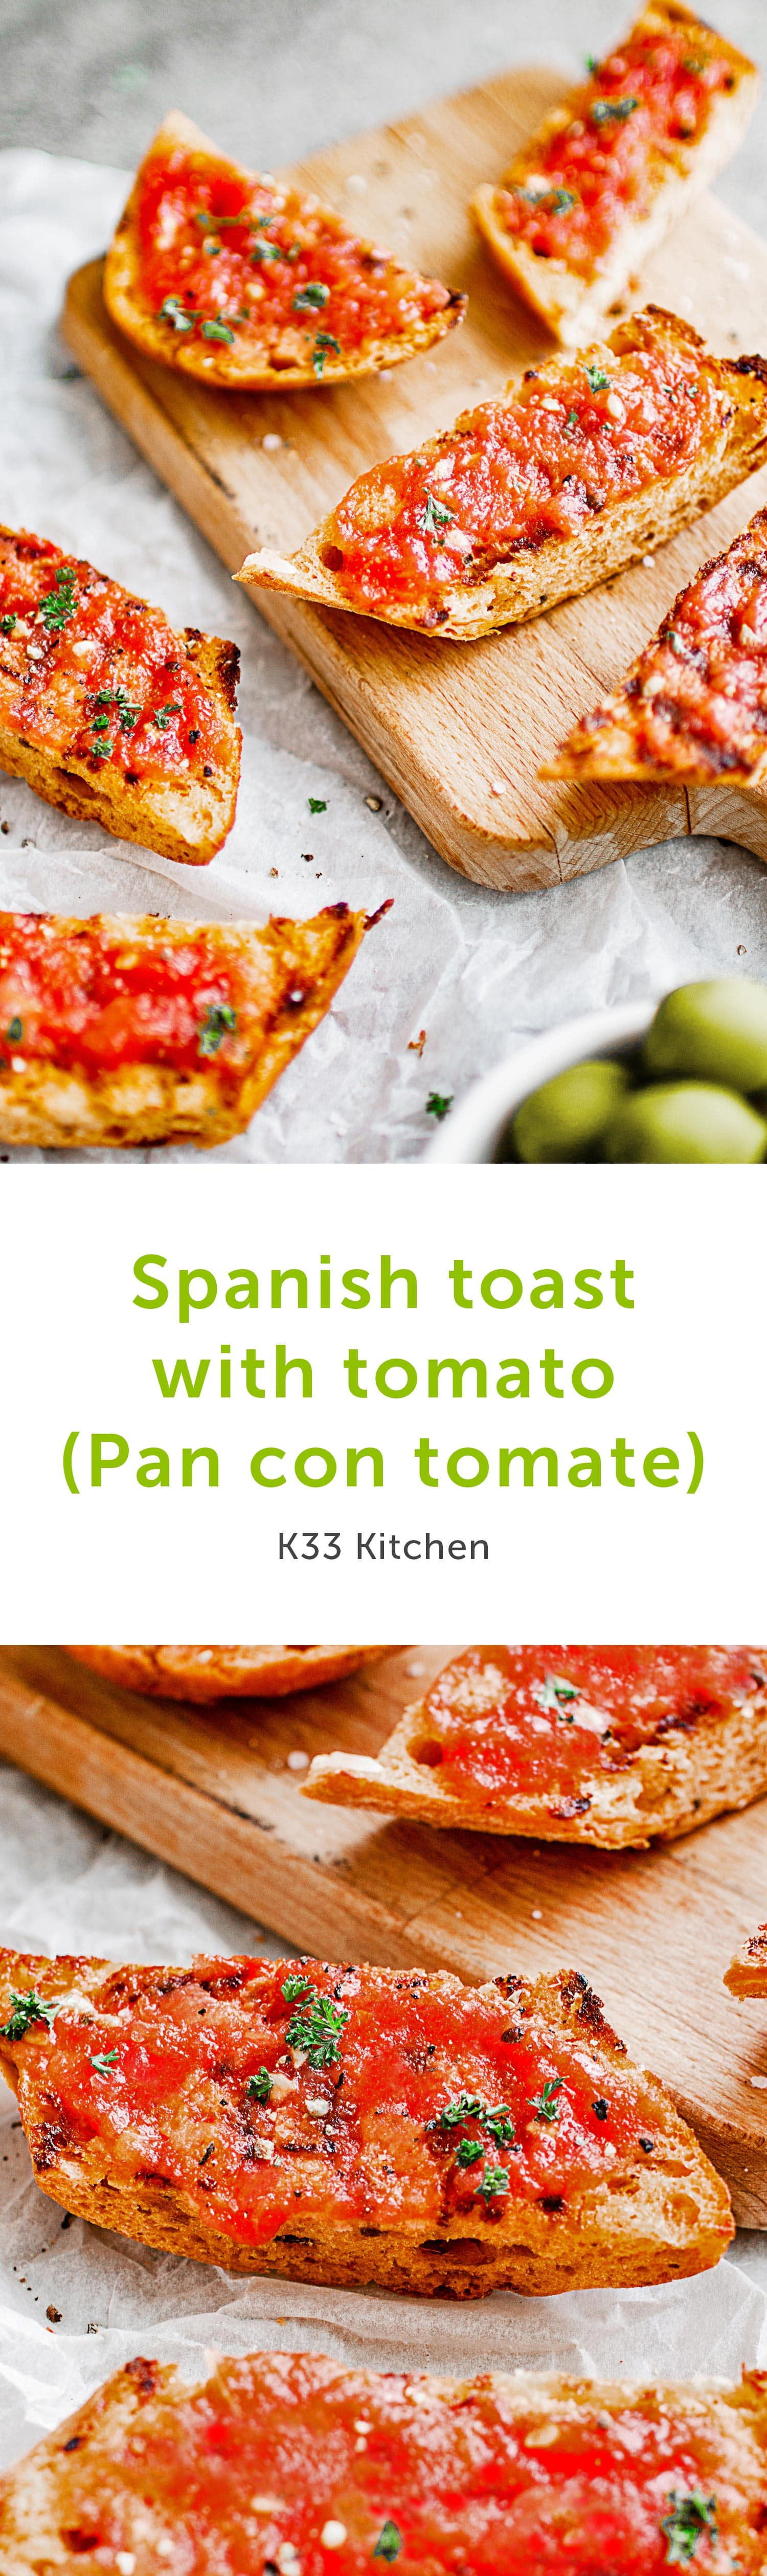 Spanish toast with tomato